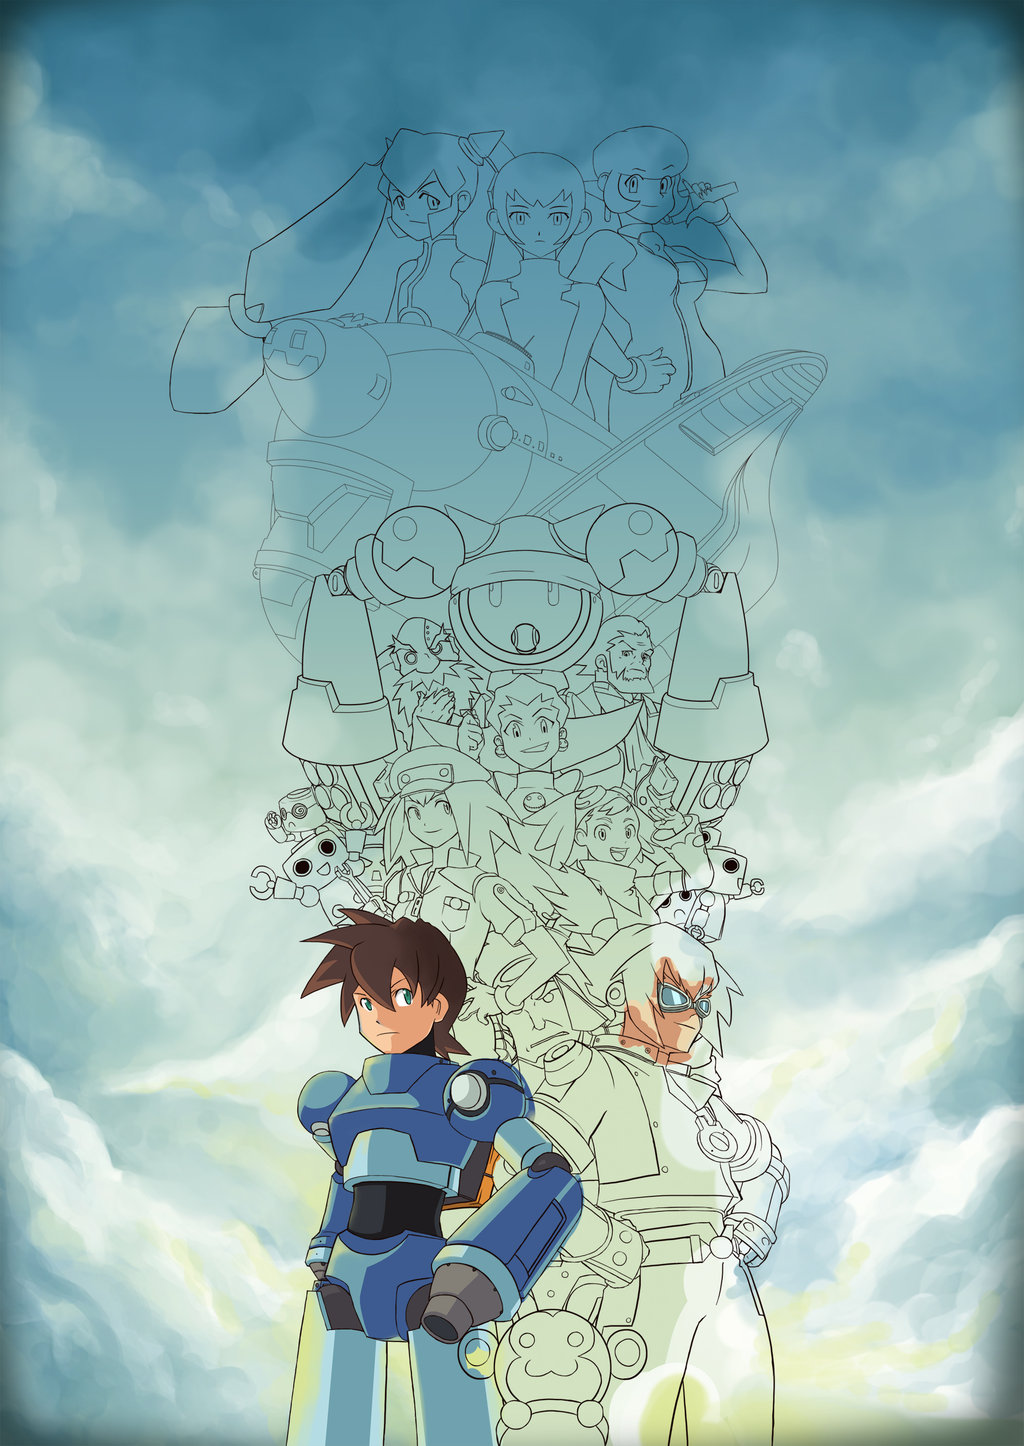 Mega Man Legends Fiche RPG reviews previews wallpapers videos